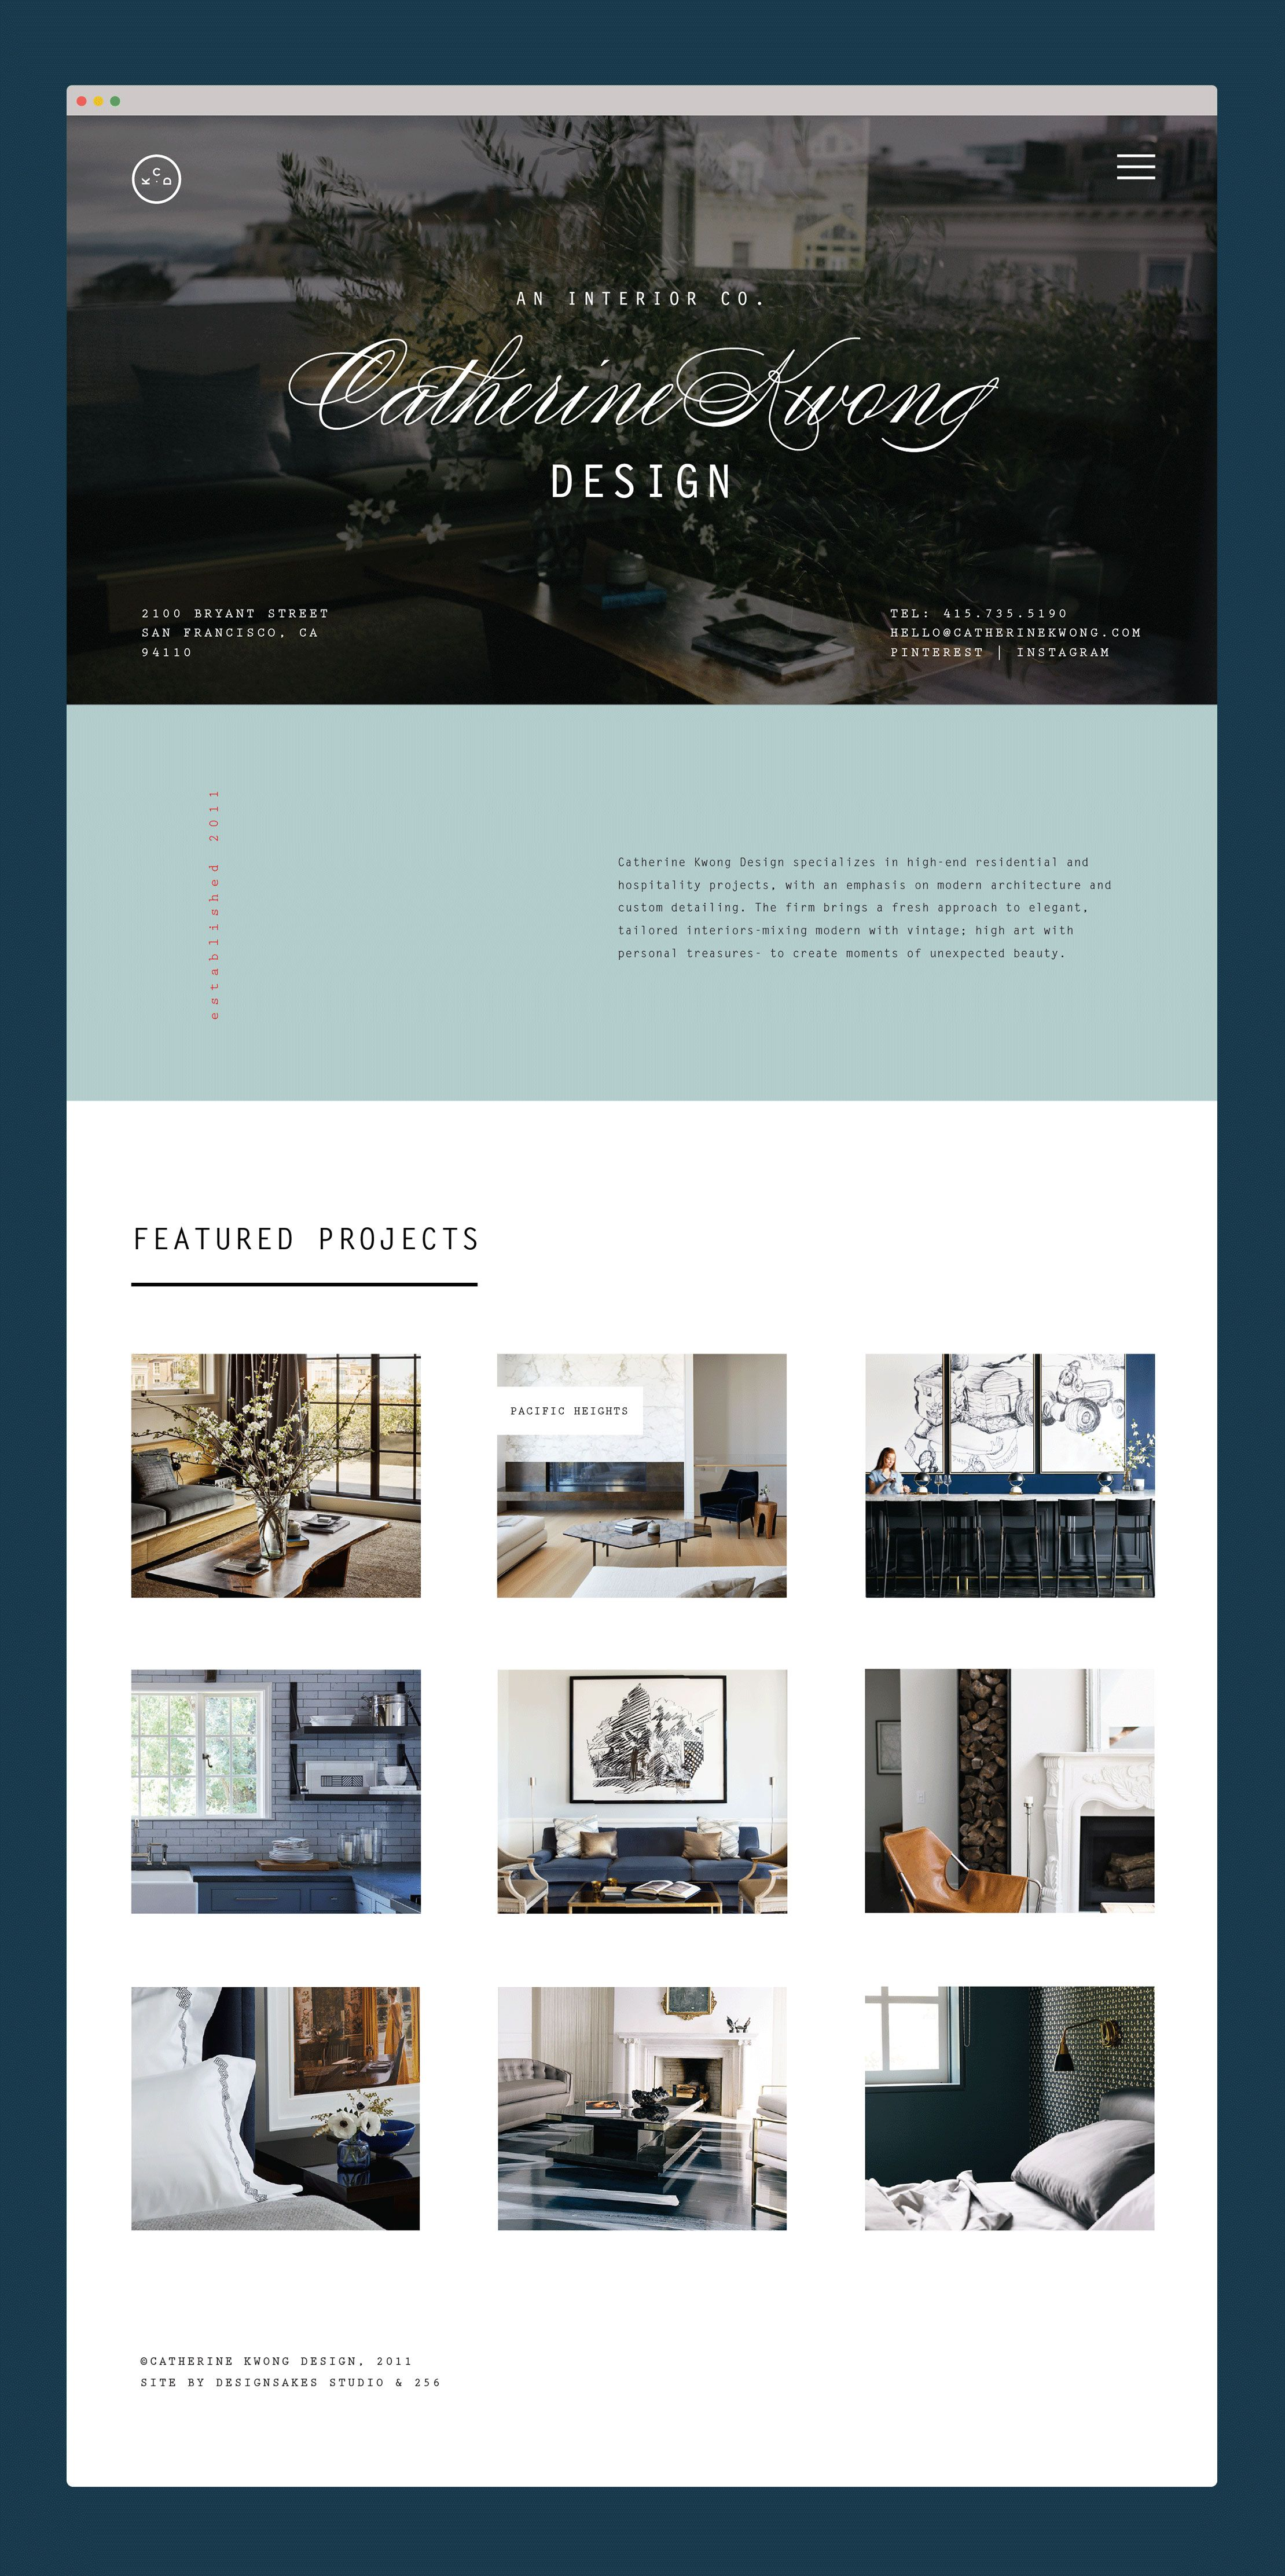 Website Design And Development For Catherine Kwong An Interior Company